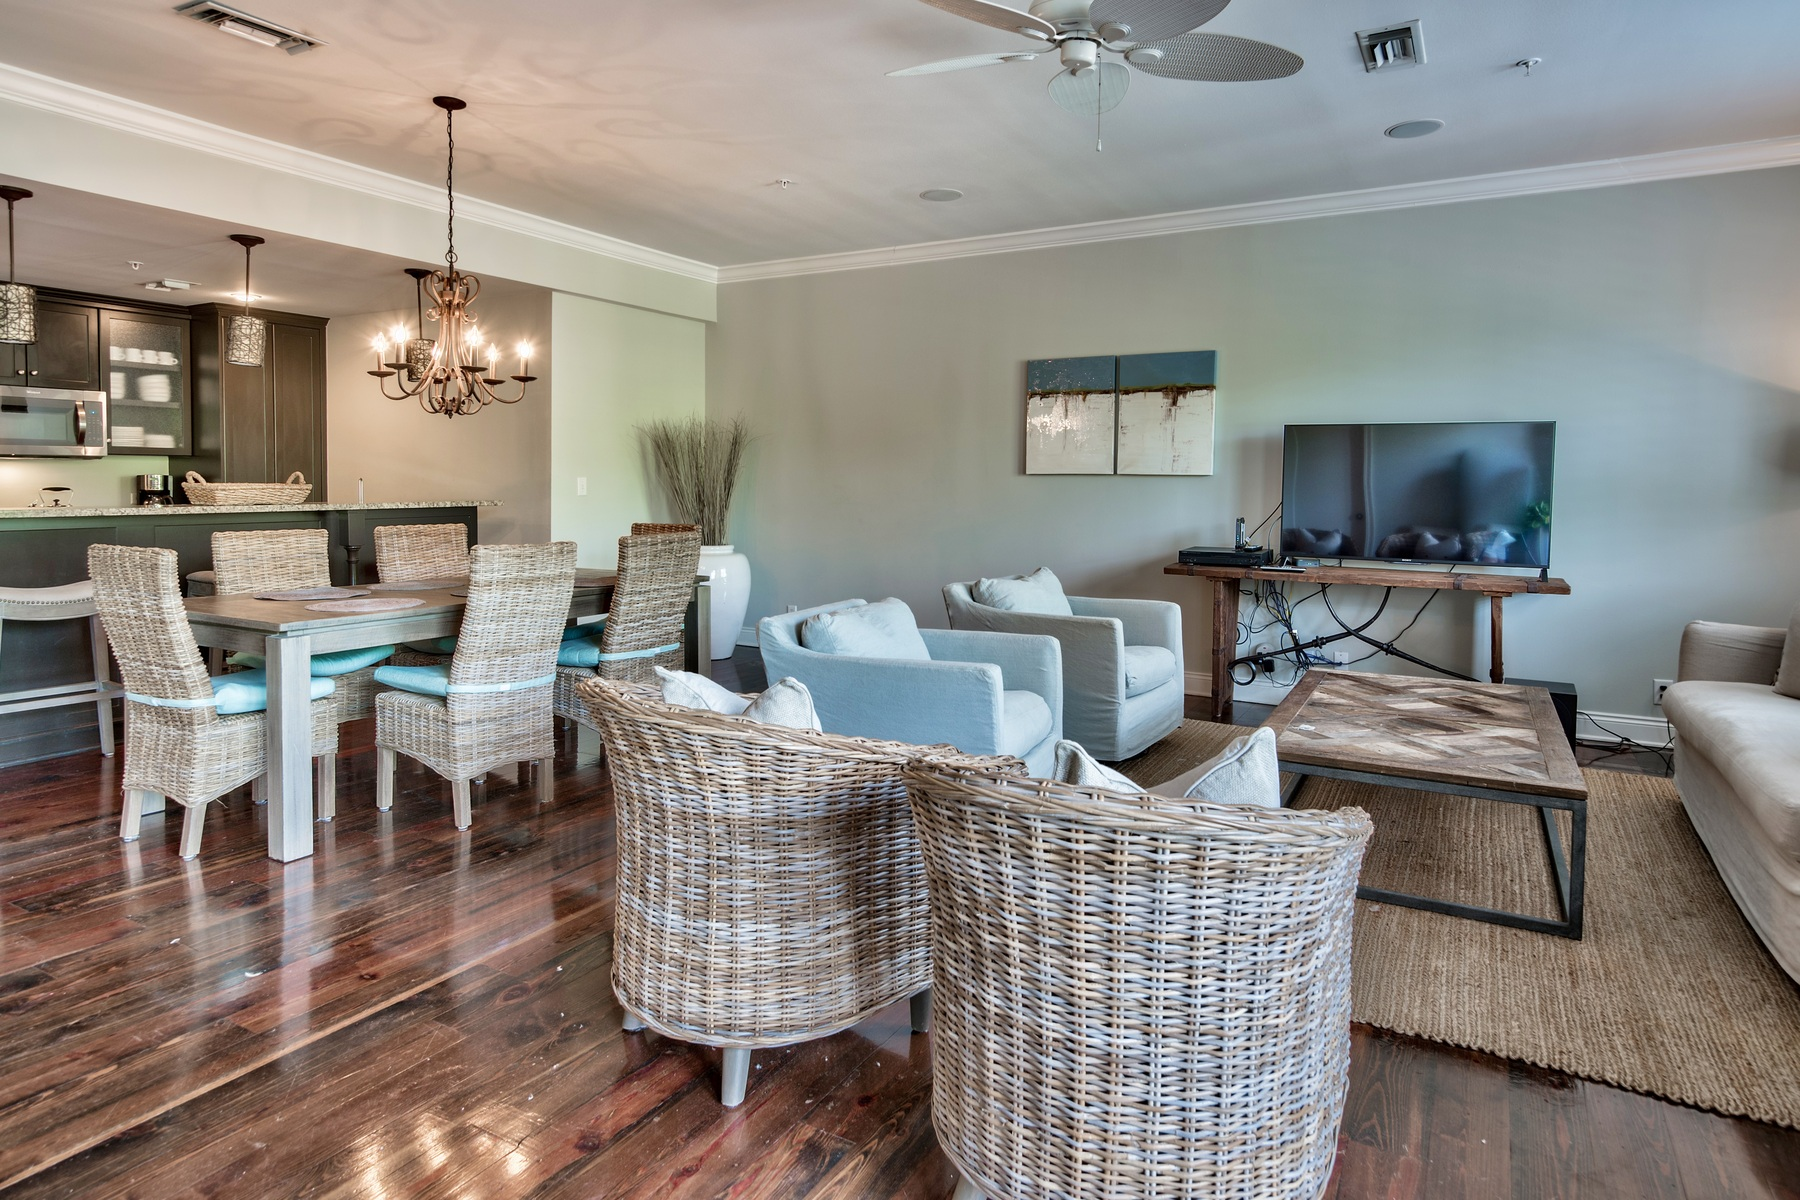 Condominium for Sale at CHARMING BEACH CONDO WITH MODERN TOUCHES AND NATURAL TEXTURES 34 N Barrett Square 2B Rosemary Beach, Florida, 32461 United States